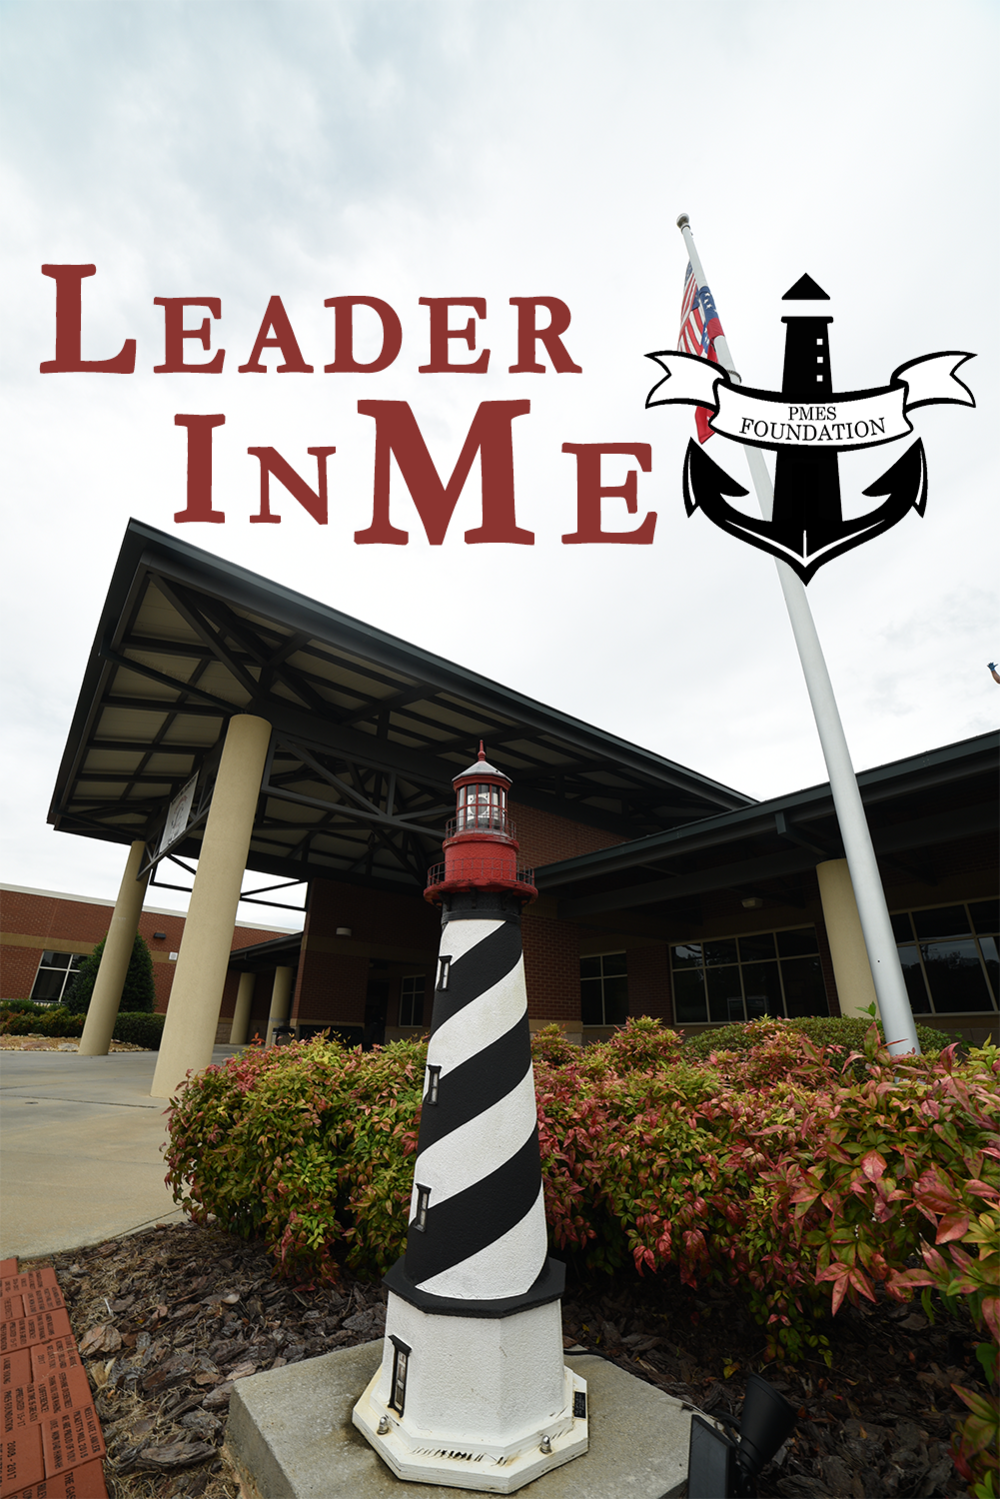 Proud Lighthouse School Recipient Since 2013 - Pickett's Mill Elementary School subscribes to the Leader in Me 7 Habits program to use as its learning and discipline model.  This derives from Stephen Covey's book 7 Habits of Highly Effective People that first introduces the concept of paradigm shift and helps people understand that different perspectives exist, i.e. that two people can see the same thing and yet differ with each other. The PMES Foundation has been providing this valuable character building curriculum to all students since 2009. In February 2013, Pickett's Mill became the first school in Cobb County to achieve